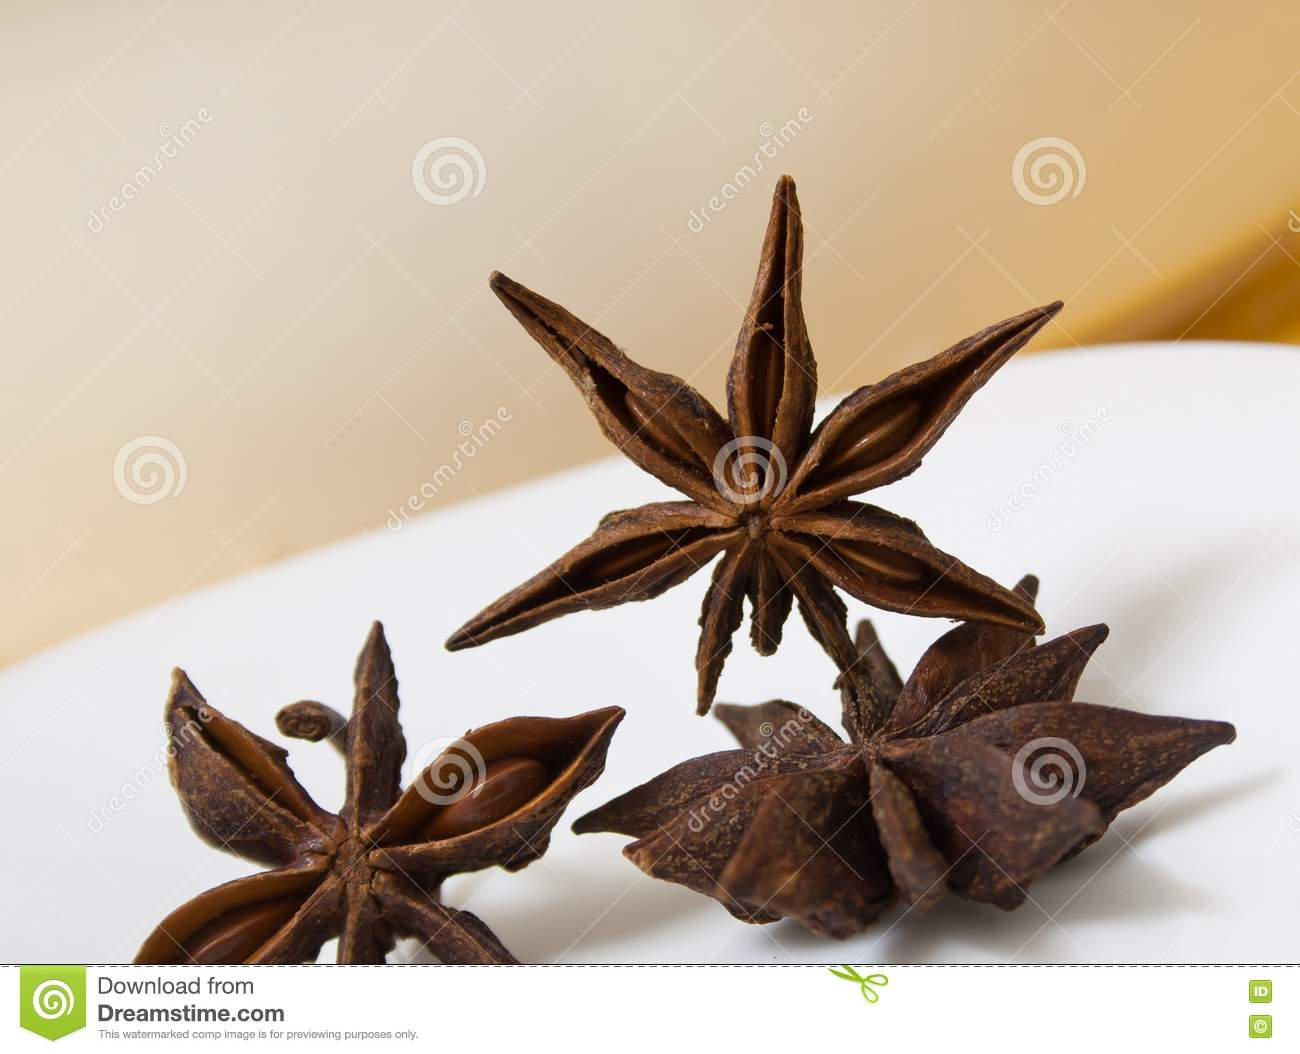 Fennel seed substitute star anise